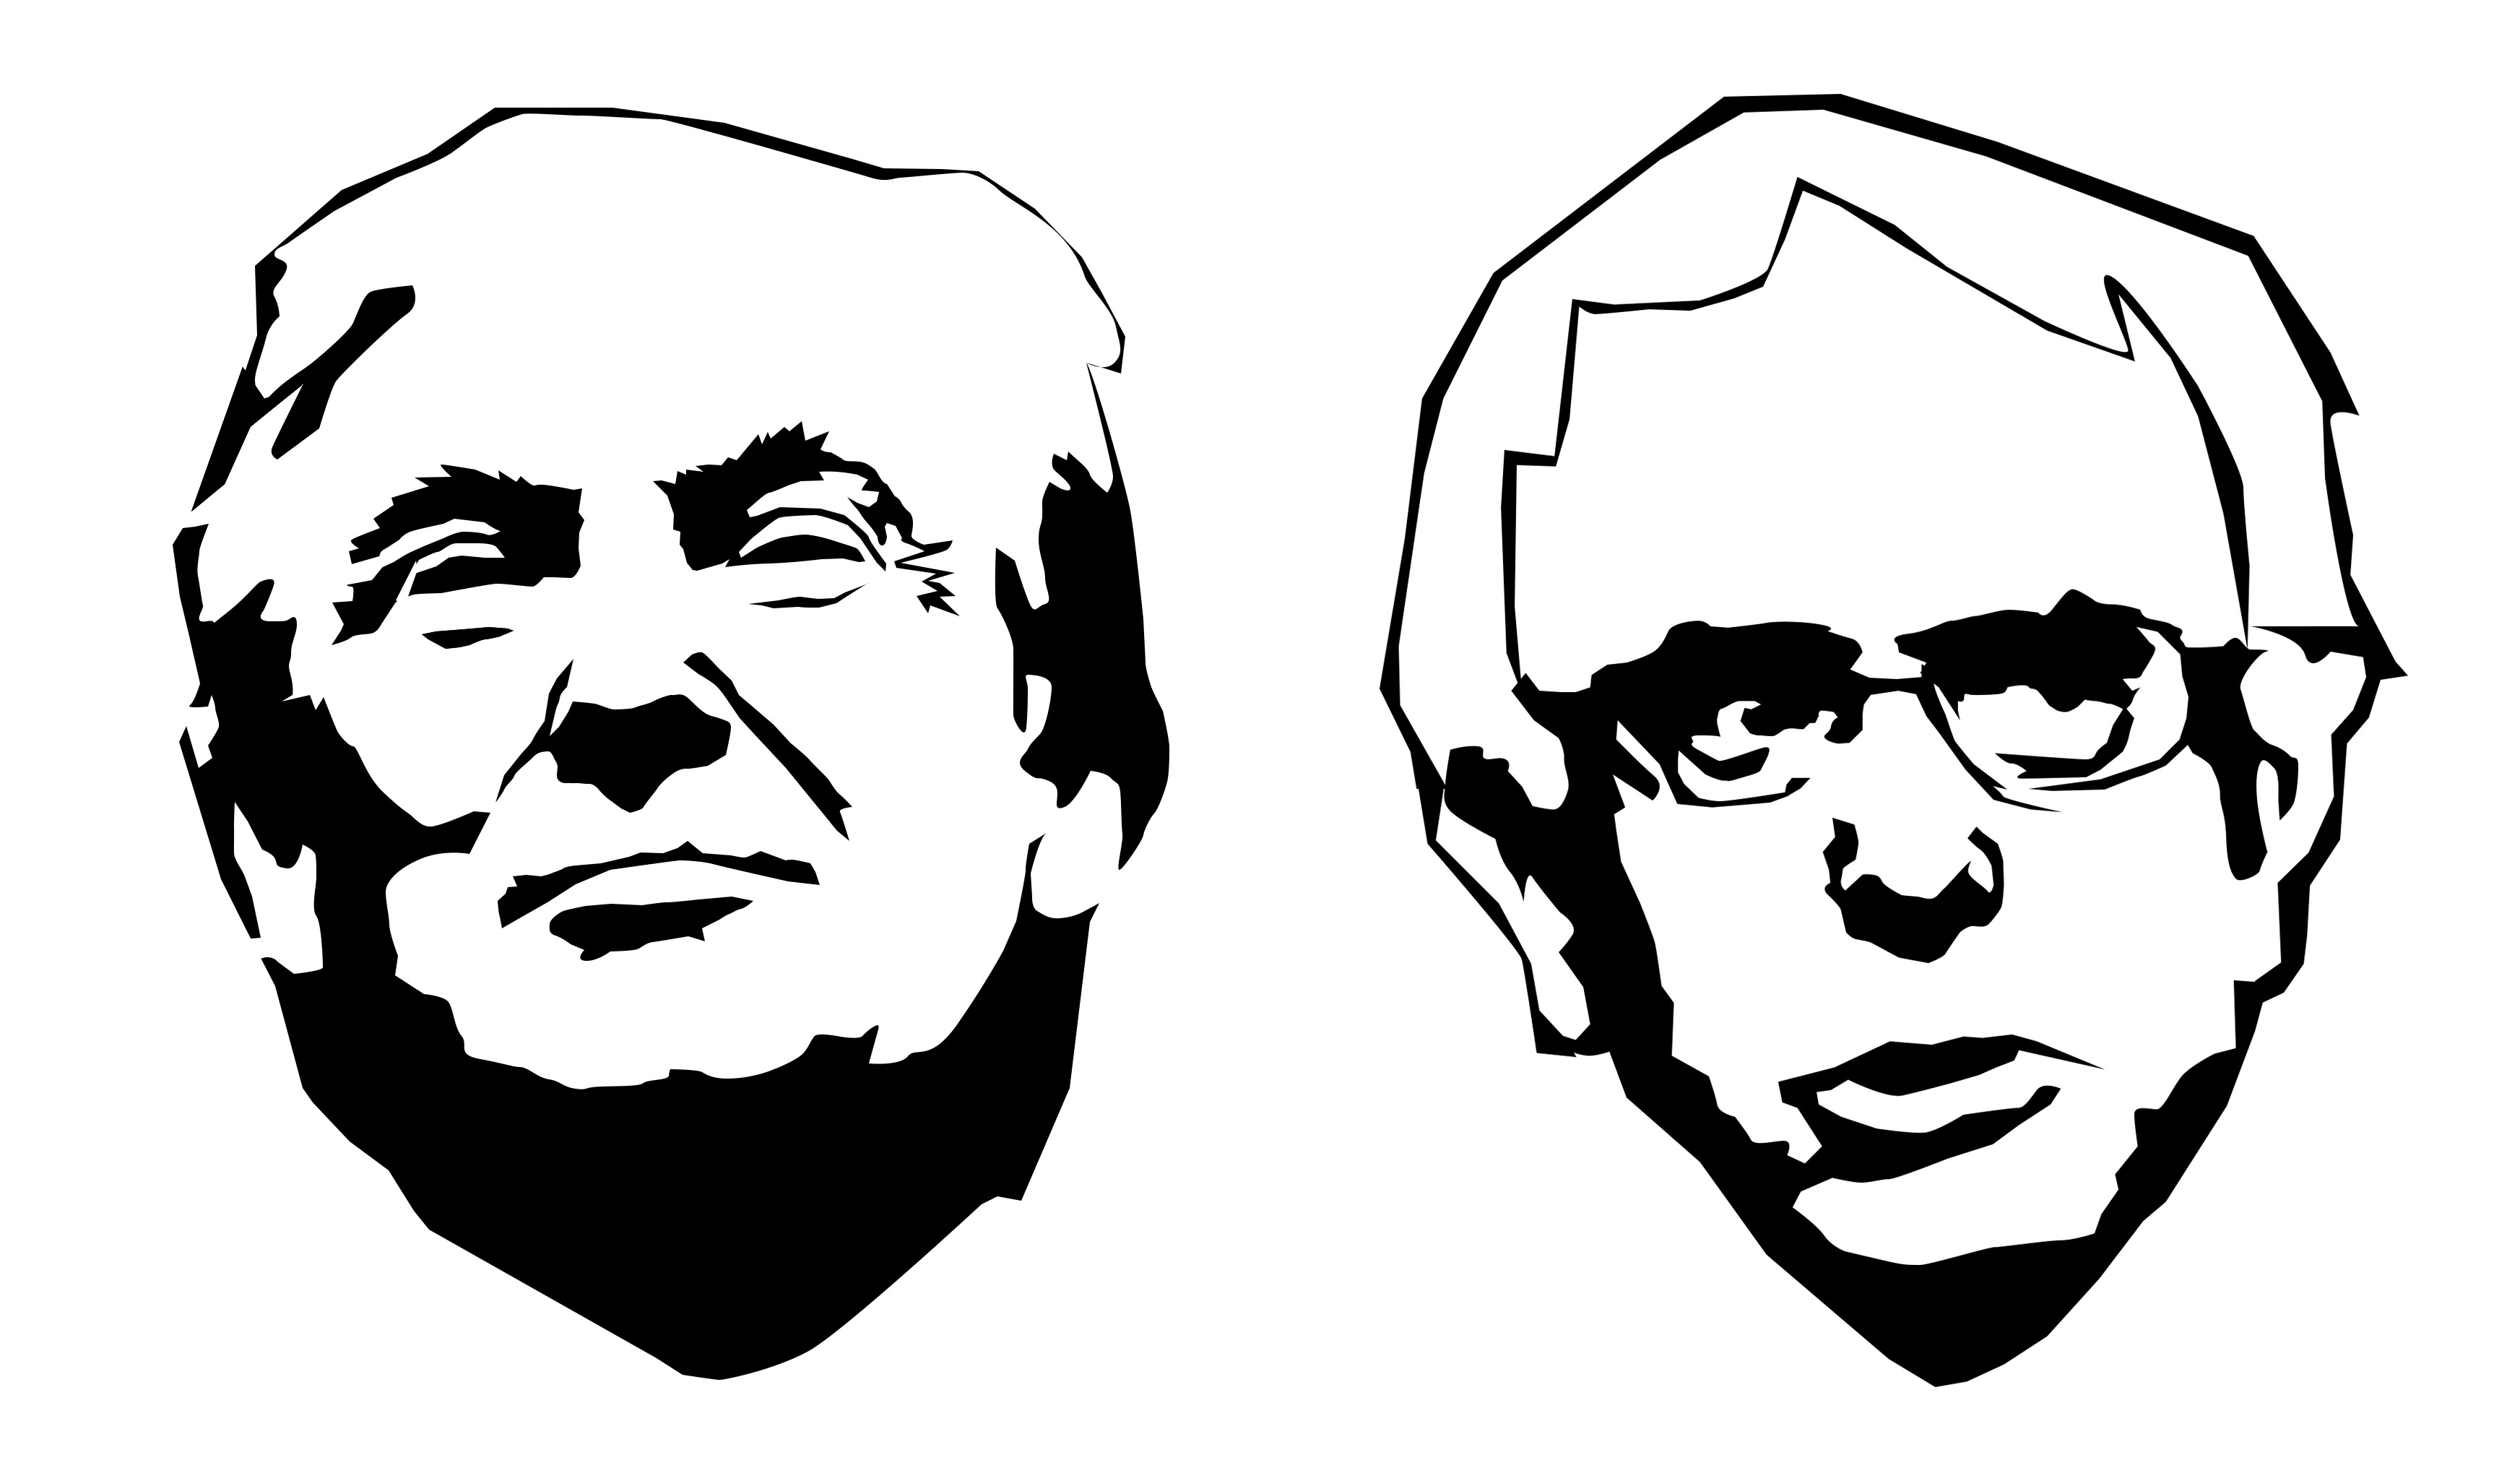 William Eric : Trump and Sanders, 2013.